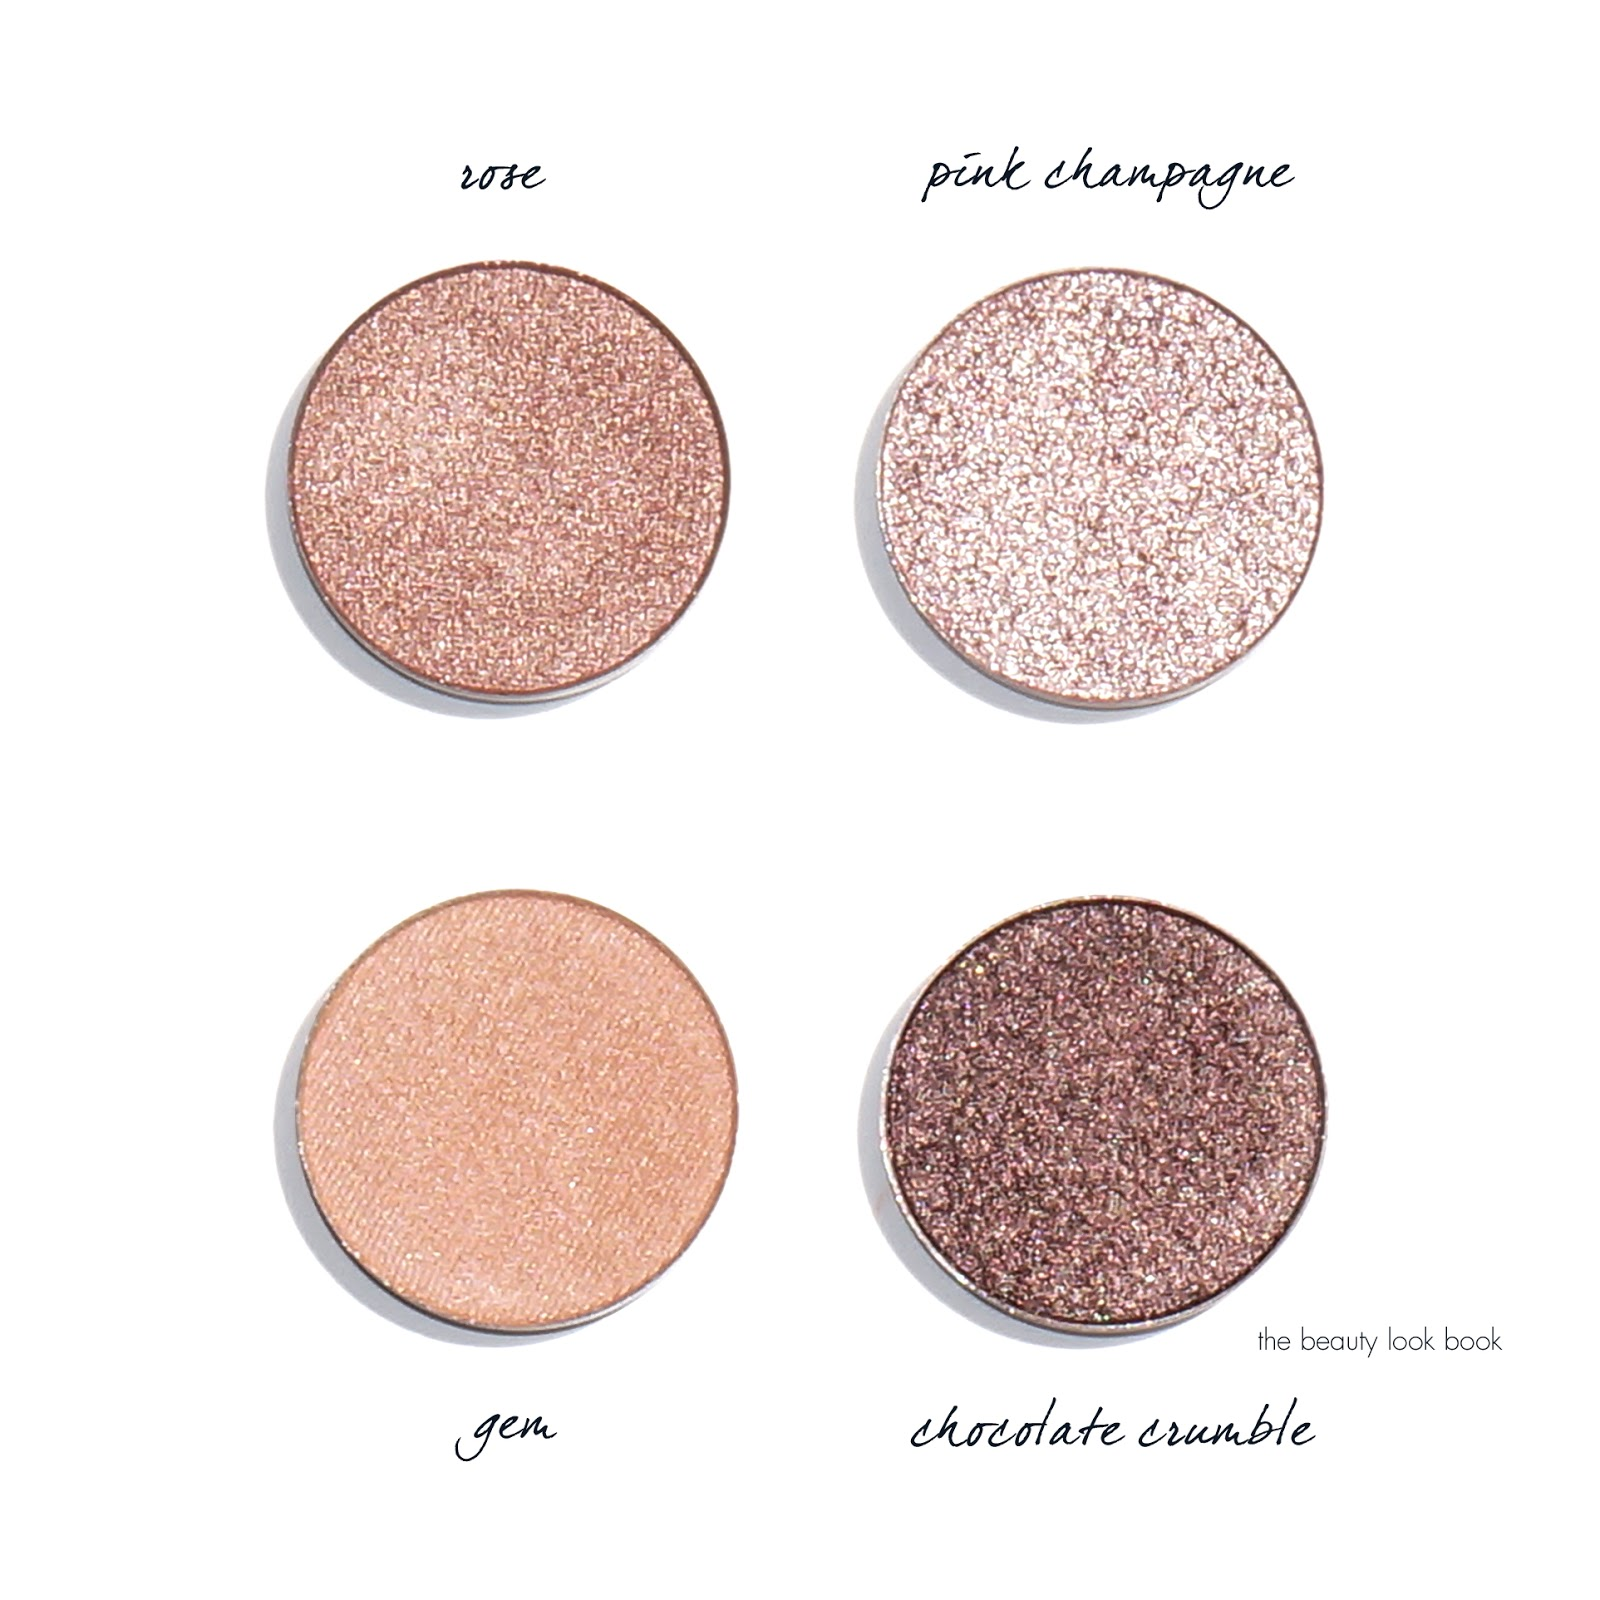 Anastasia Beverly Hills Stone The Beauty Look Book